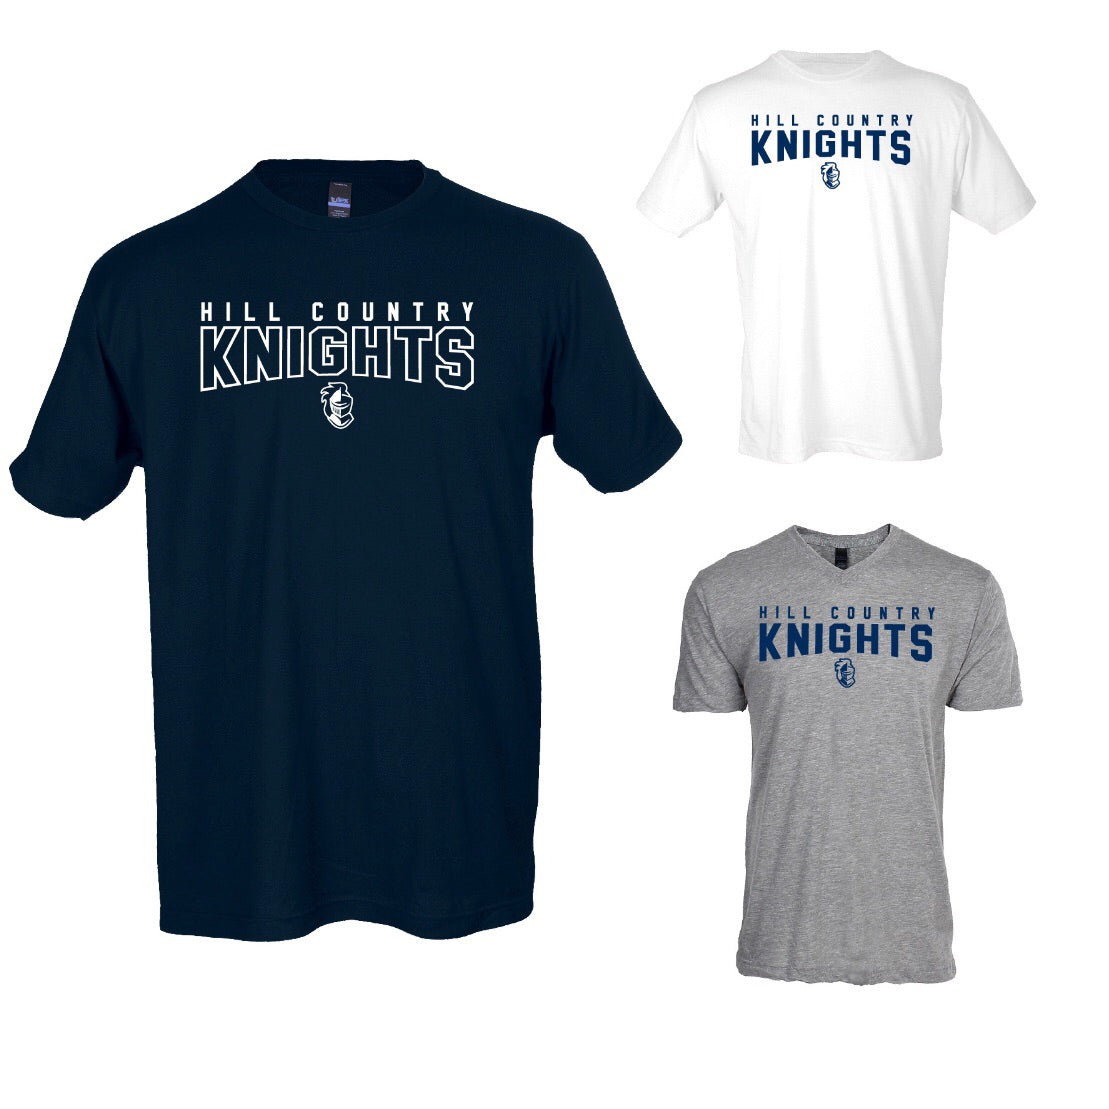 Hill Country Knights T-shirt (Closeout)